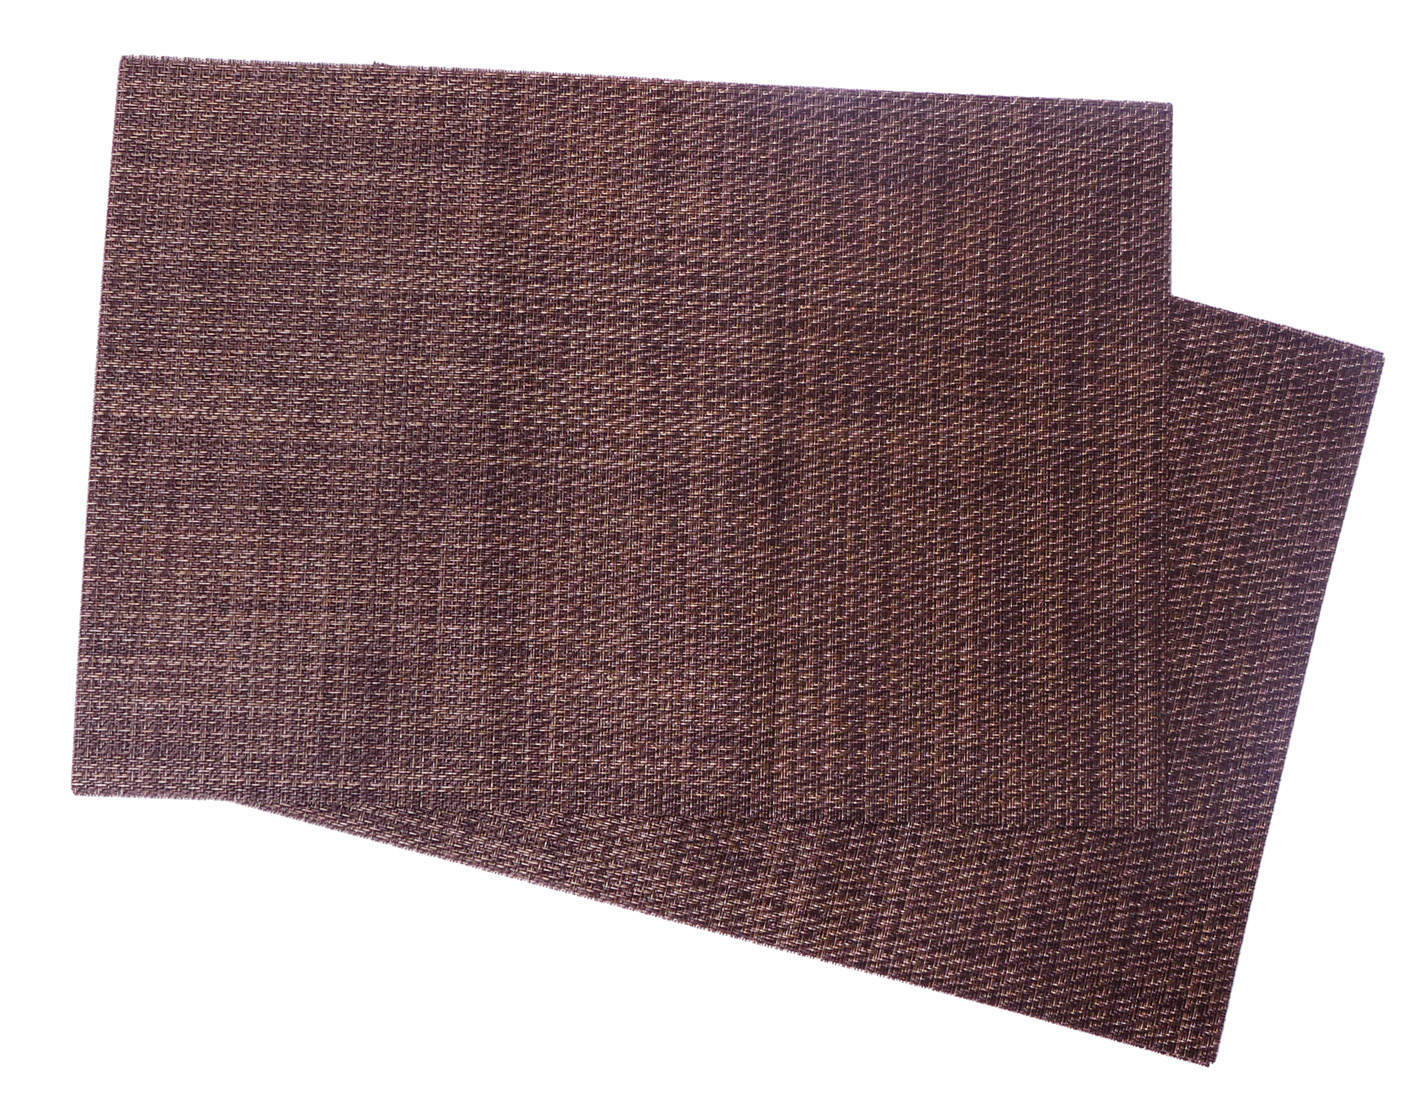 Image of Woven Vinyl Placemat, Brown Heather MAT26